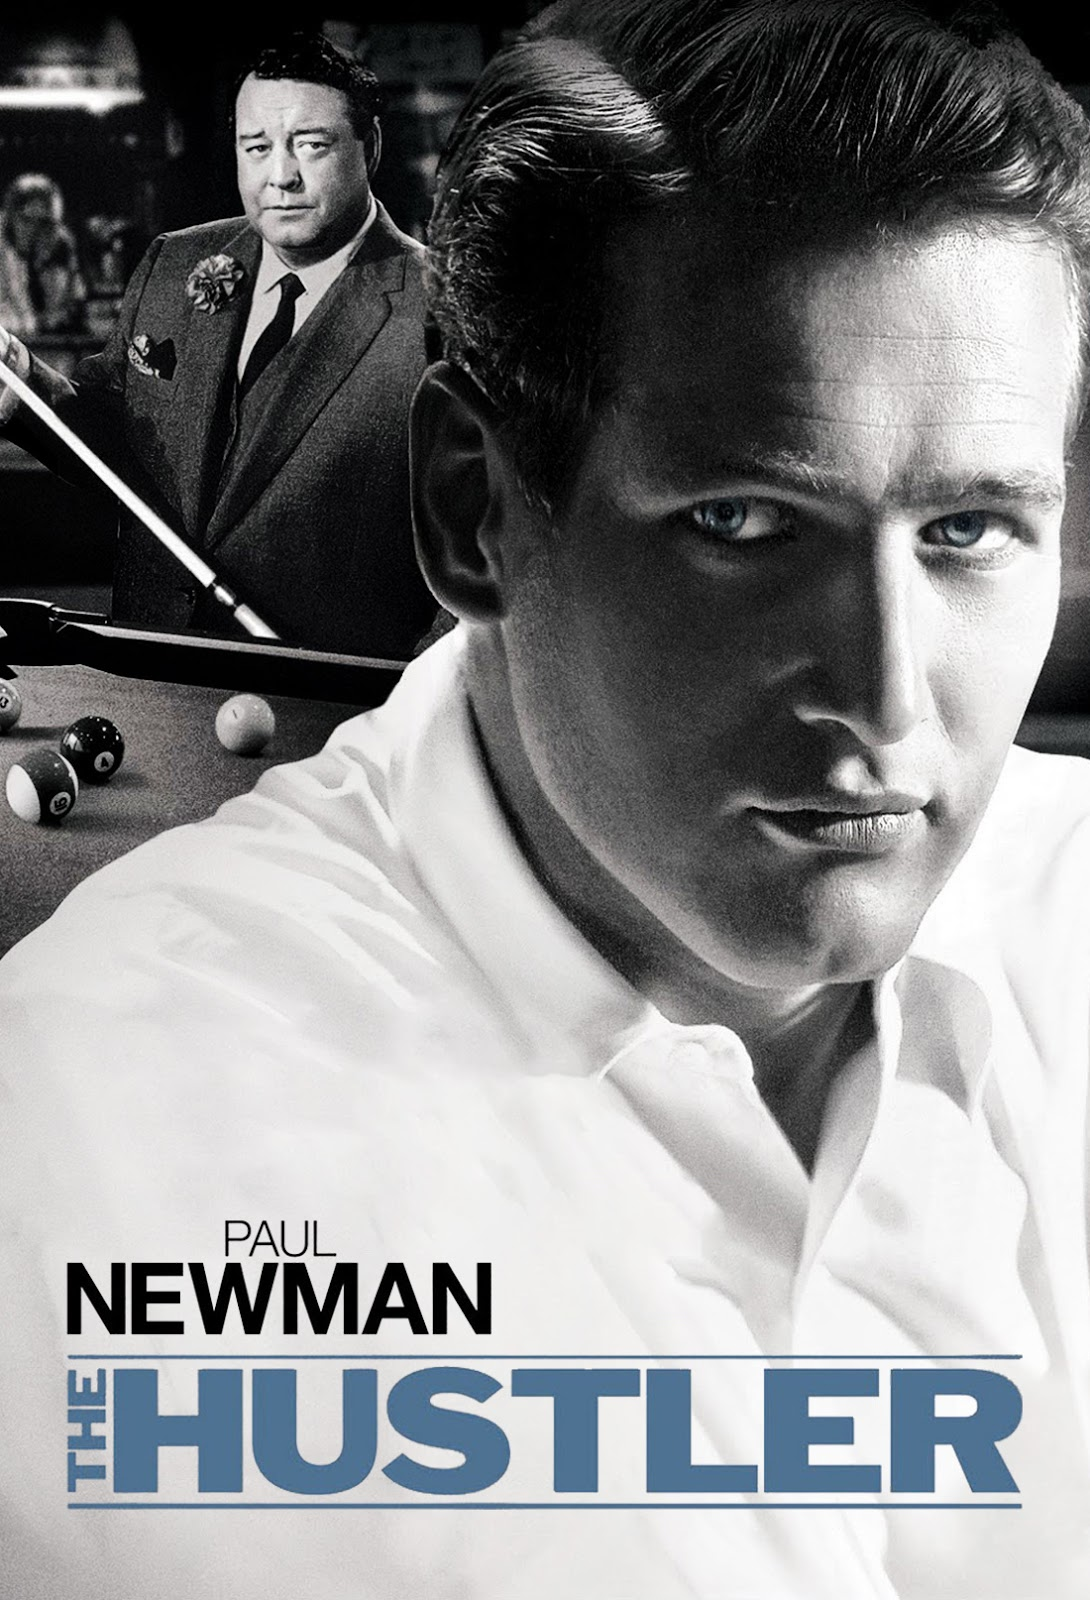 photos the hustler paul newman